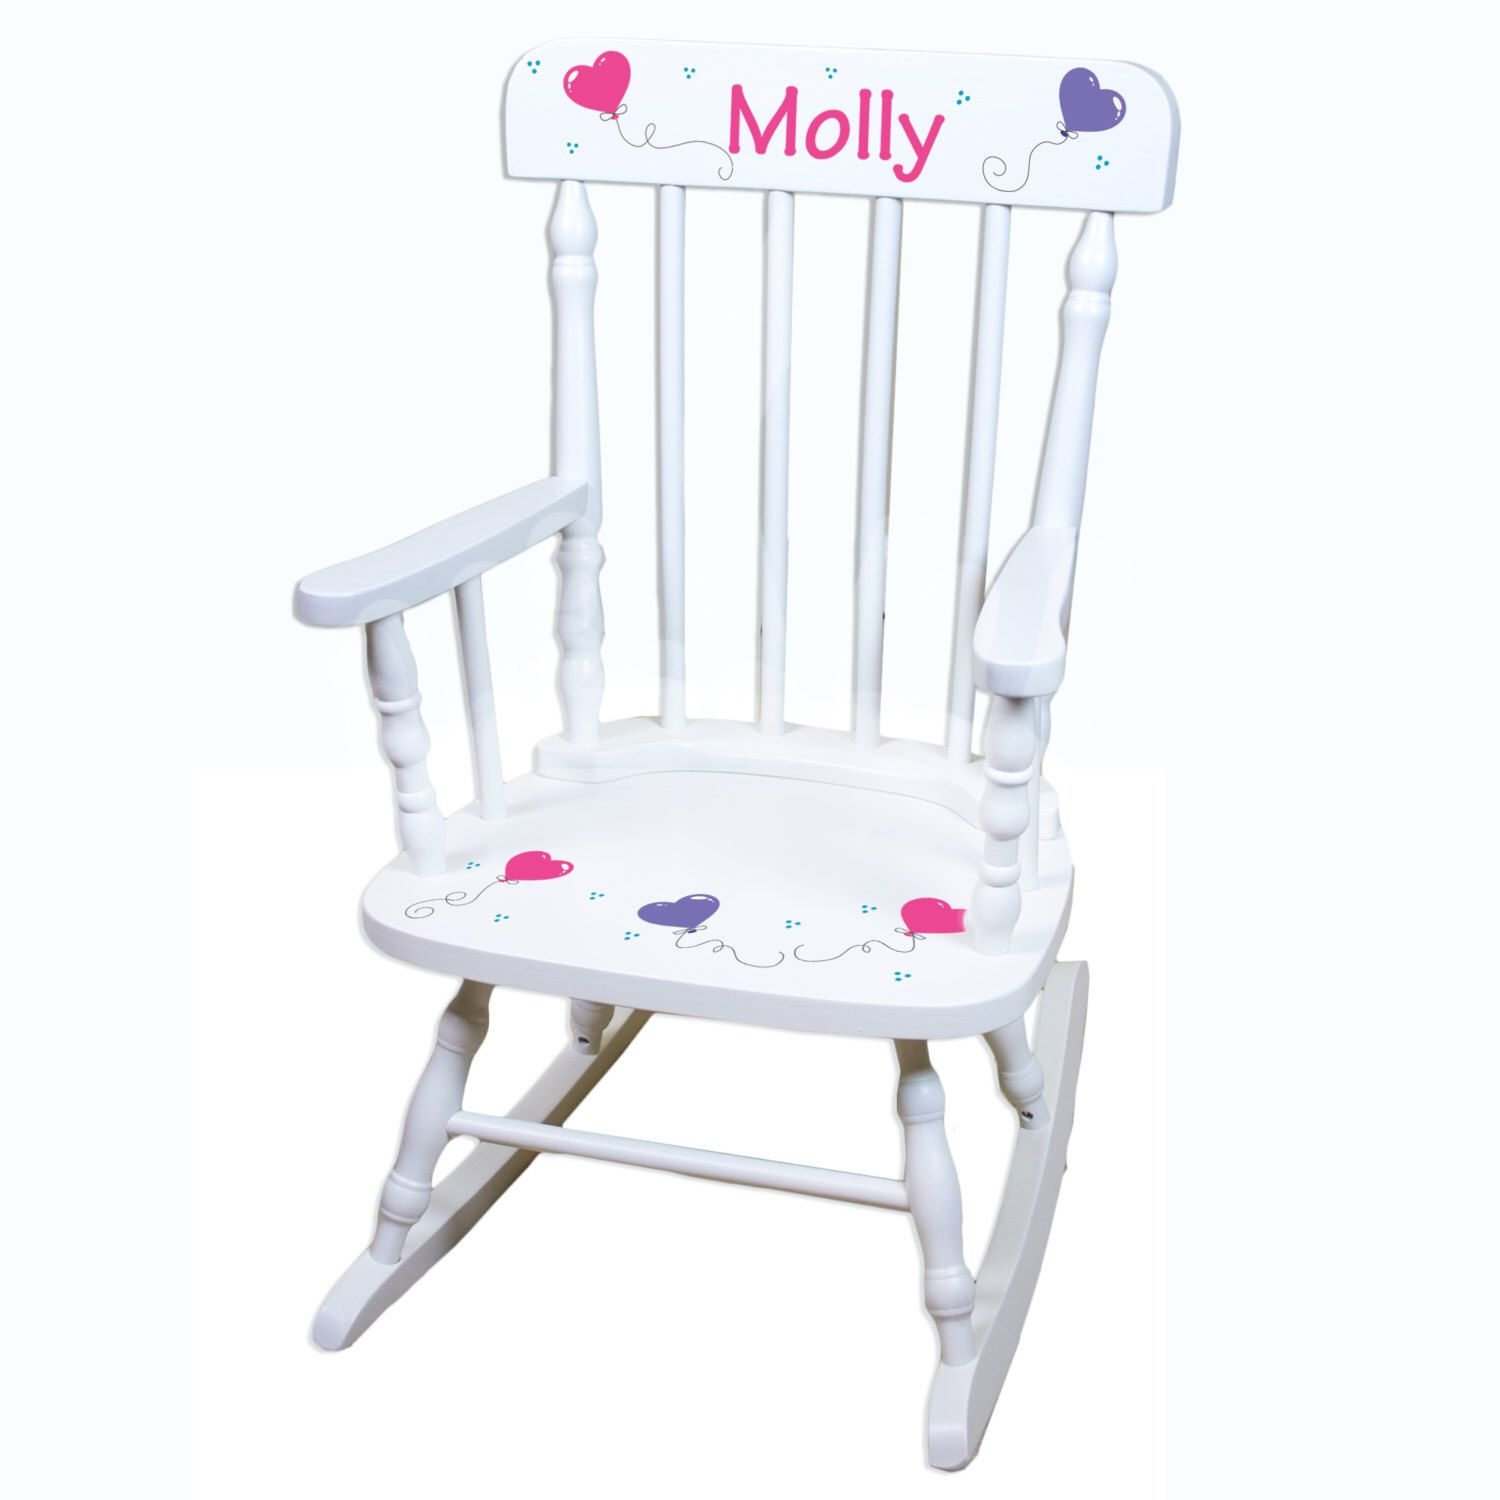 White Wood Rocking Chair Nursery Fancy Desk Chairs Hand Painted Personalized Girls Spindle